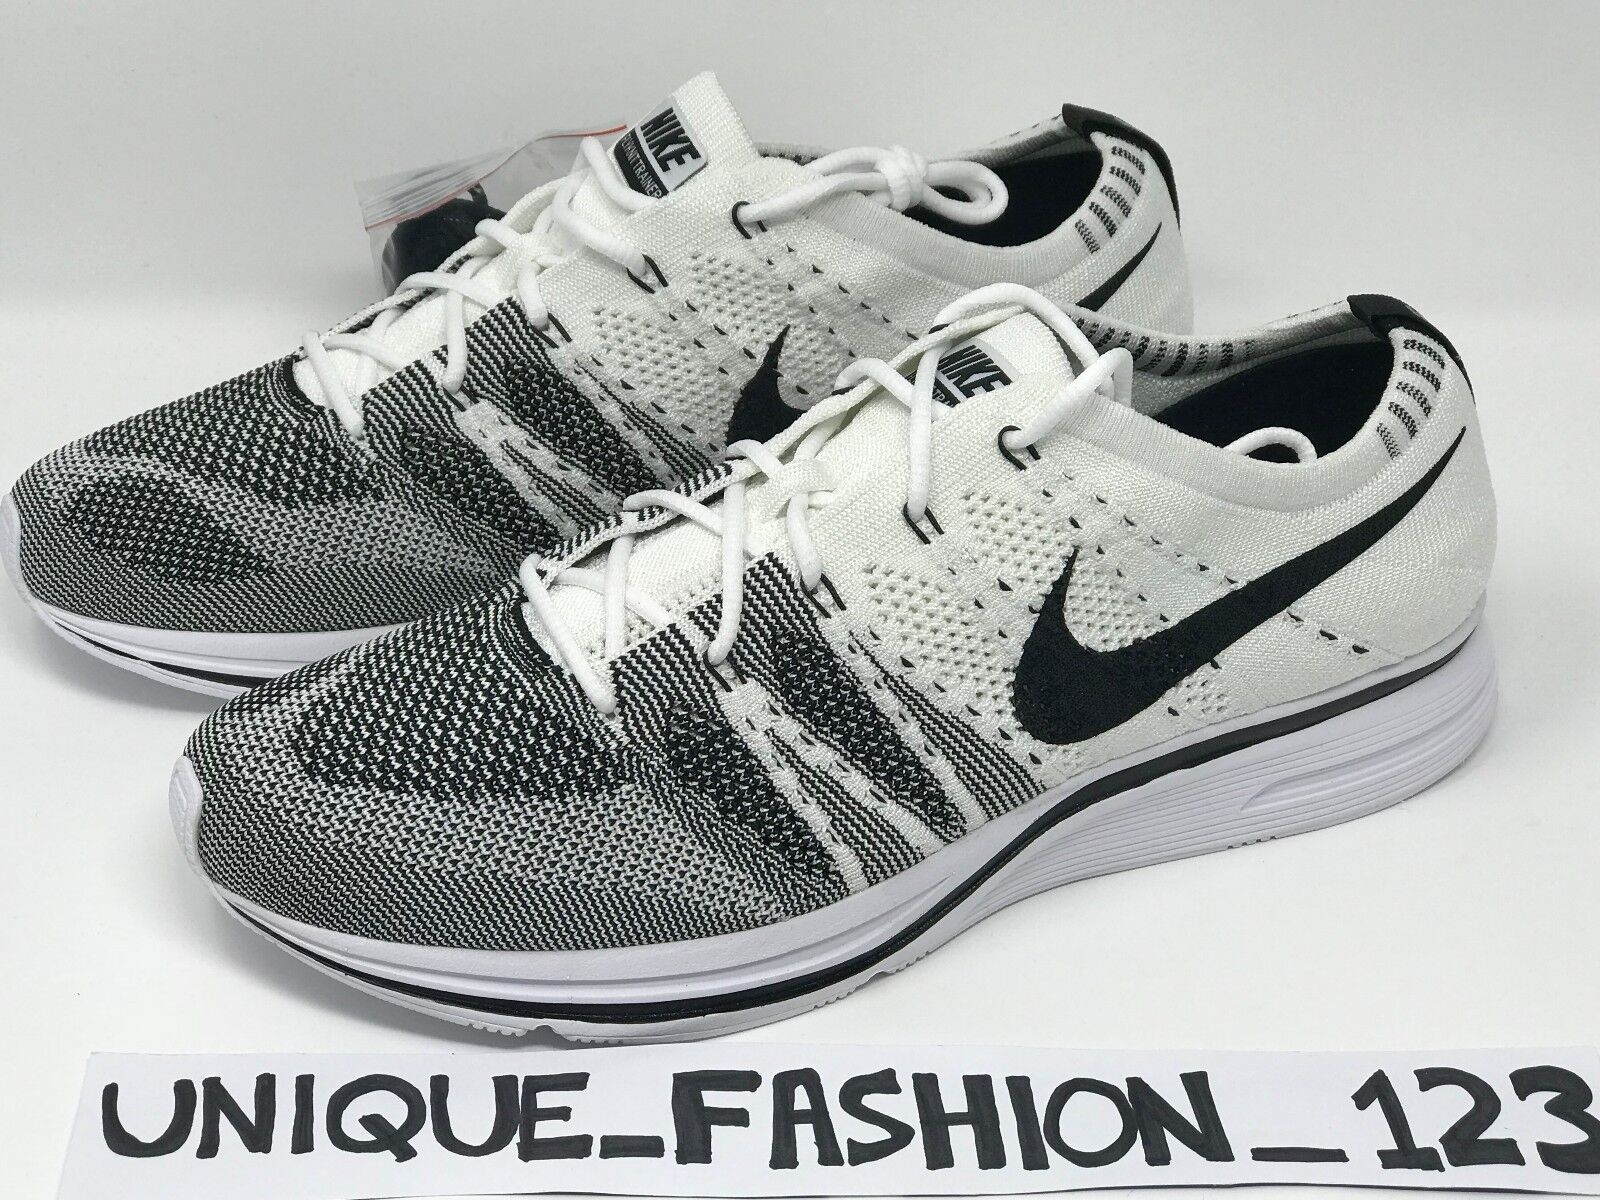 NIKE FLYKNIT TRAINER THE RETURN blanc  Noir 4 5 6 7 8 9 10 11 12 OREO OG